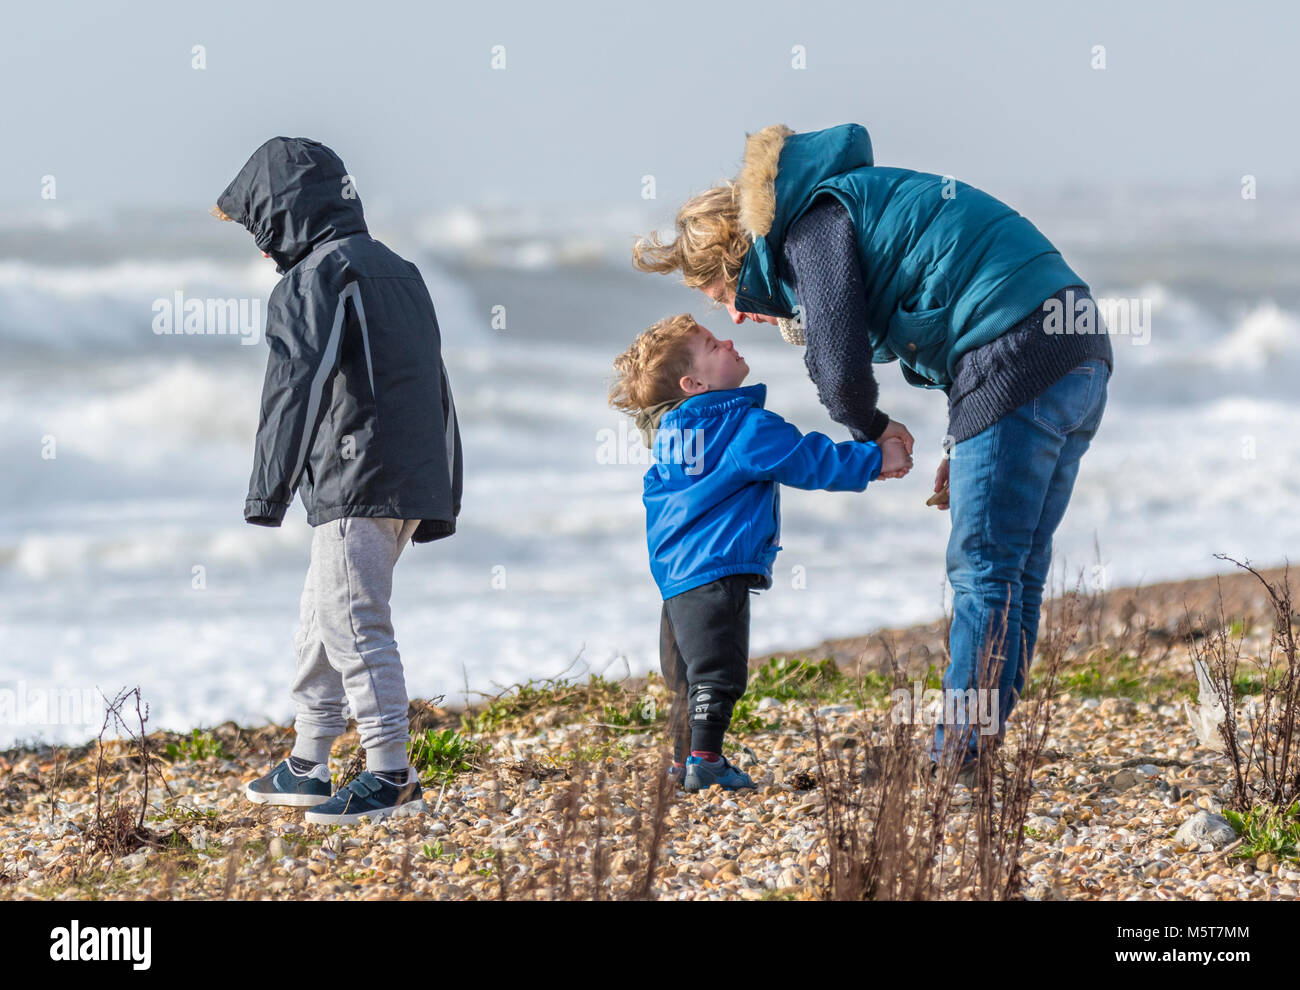 Woman with 2 children appearing to be disciplining one of them on a beach on a cold rough day in Winter in the UK. Stock Photo